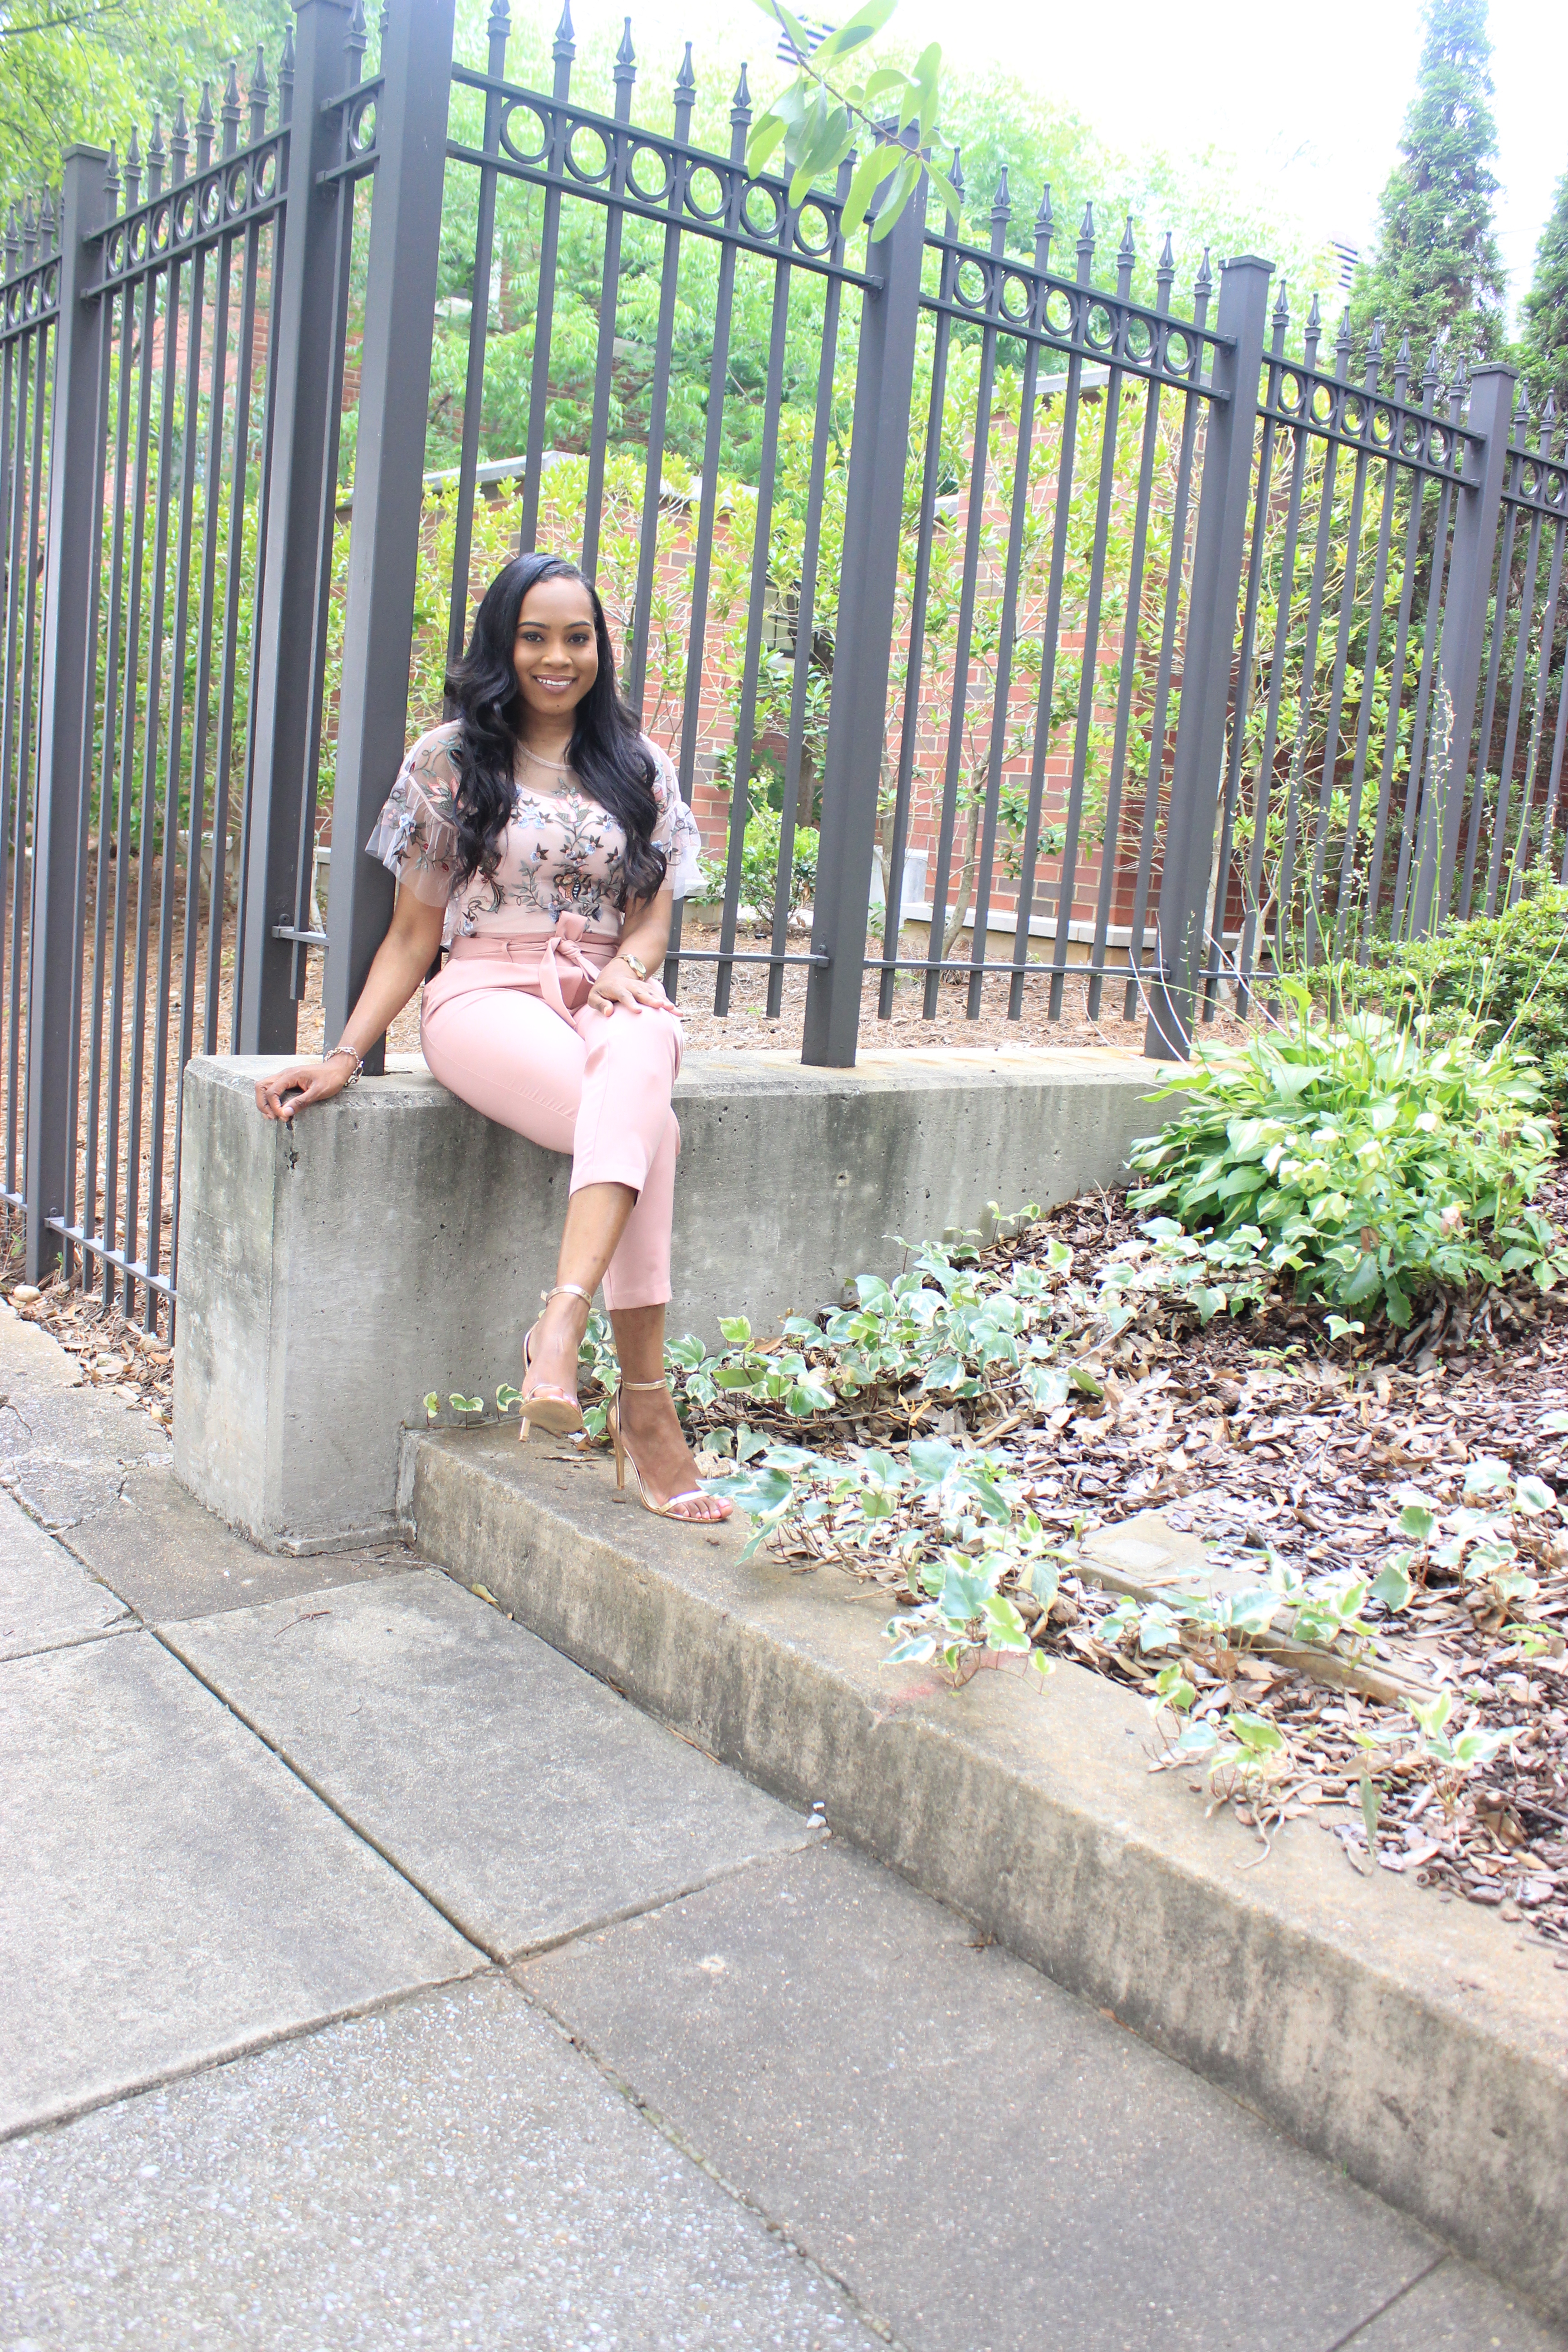 Style-files-Daila-Floral- Embroidered-Applique- Flounce-Sleeve-Sheer- Top-High-waist-pink-tie-front-pants-Birmingham-top-blogger-Alabama-top-blogger-oohlalablog-4